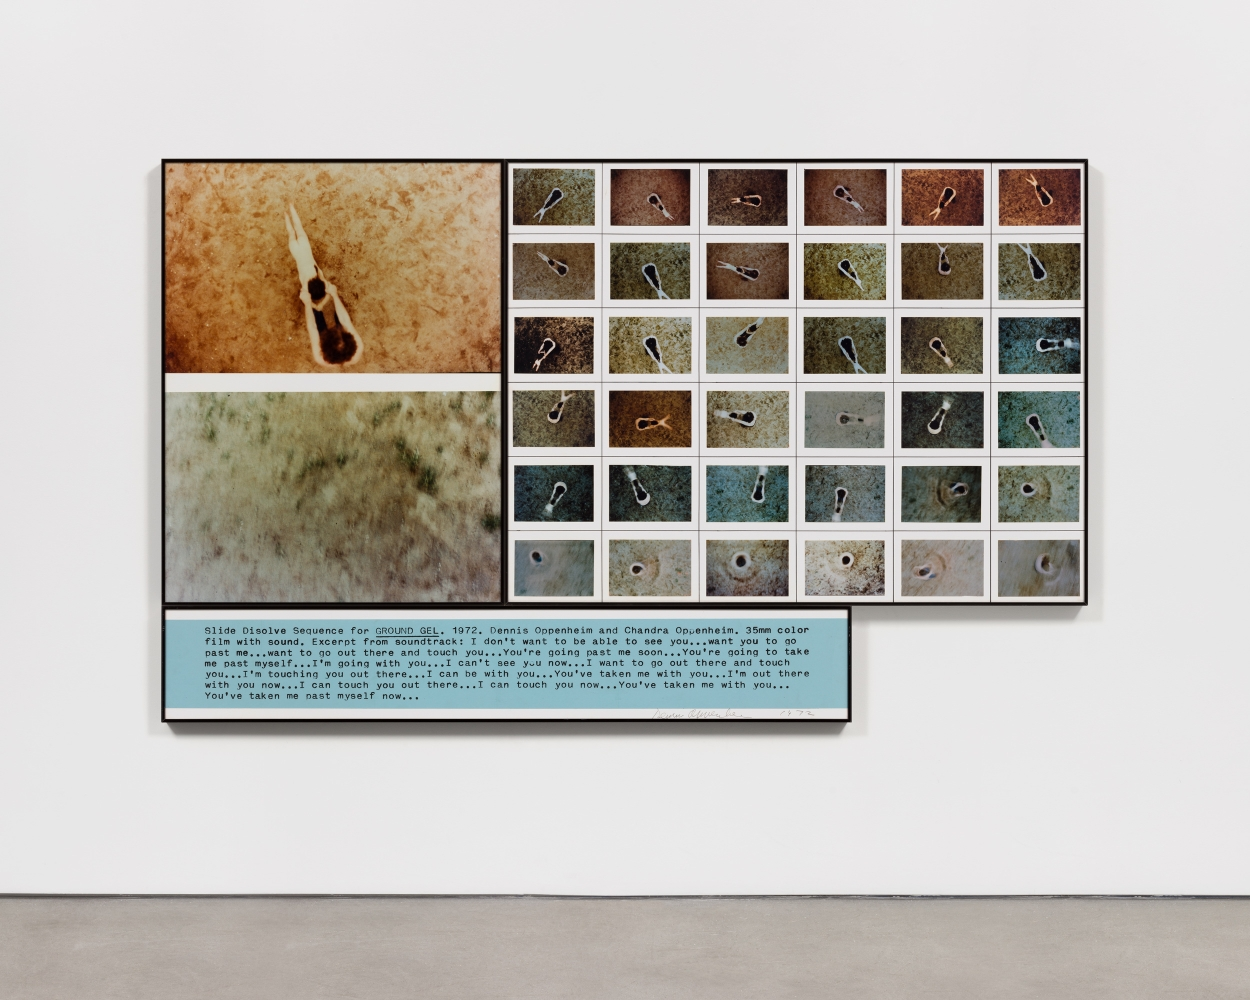 Three paneled piece depicting microscopic slides arranged in a grid with blue text below by Dennis Oppenheim.